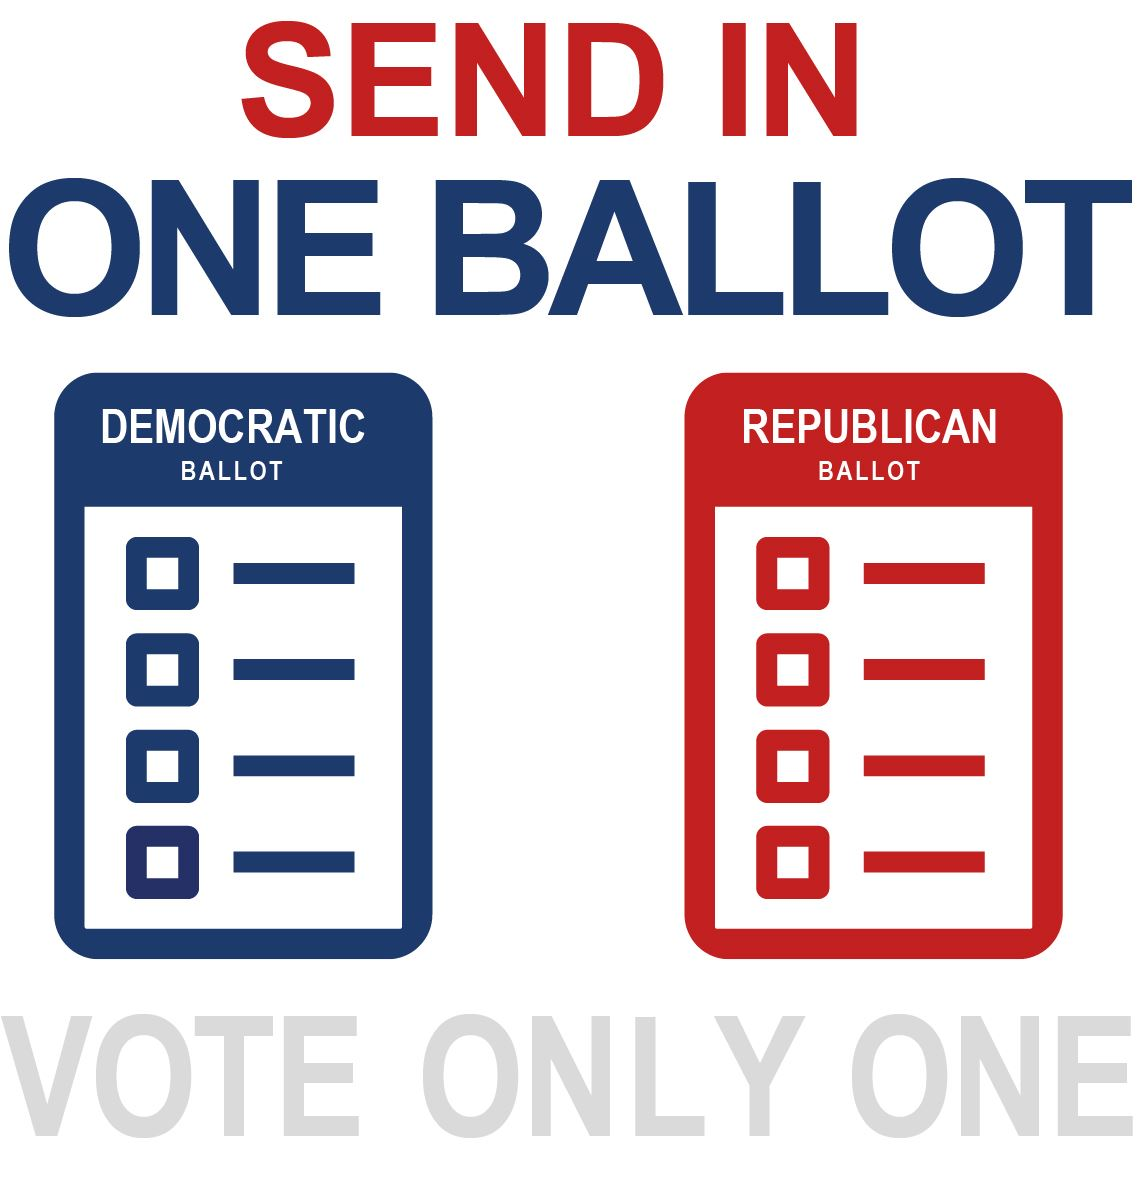 Return One Ballot. Vote Only One.